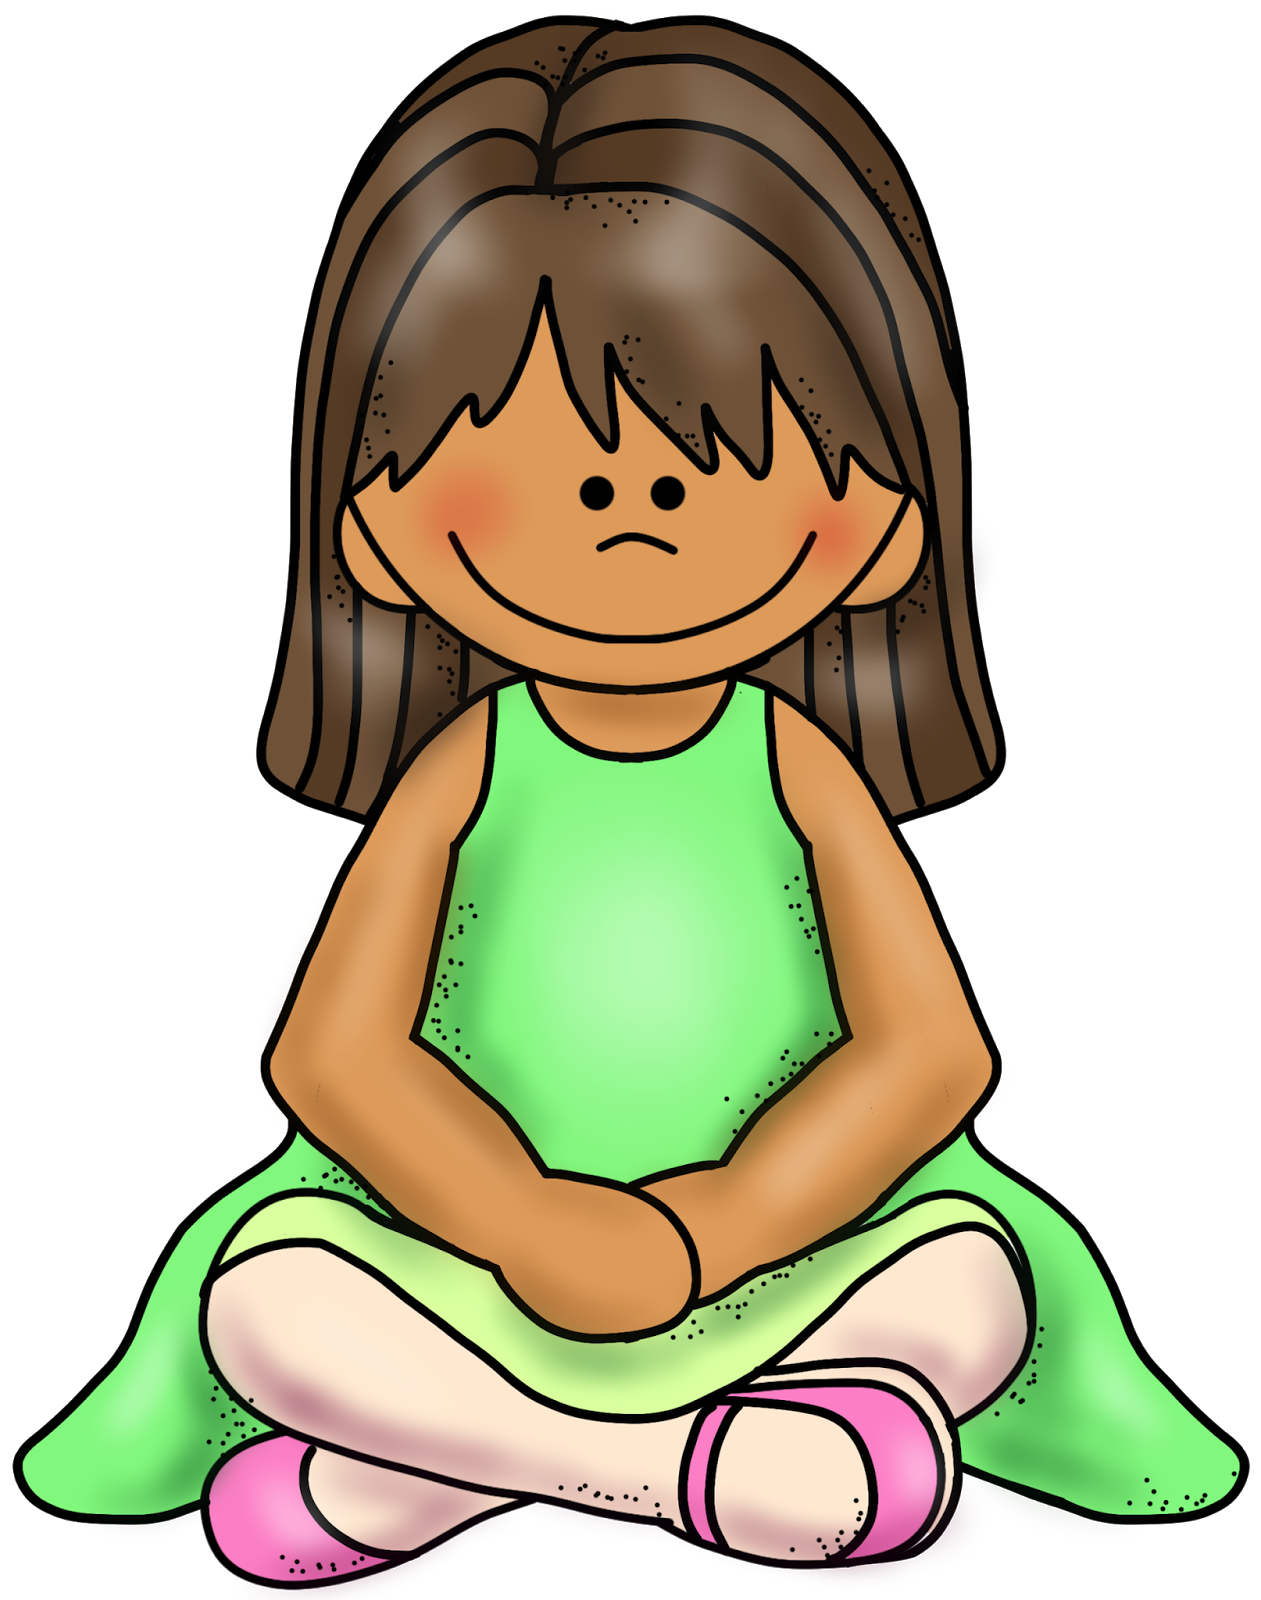 Sitting criss cross applesauce. Young clipart sit